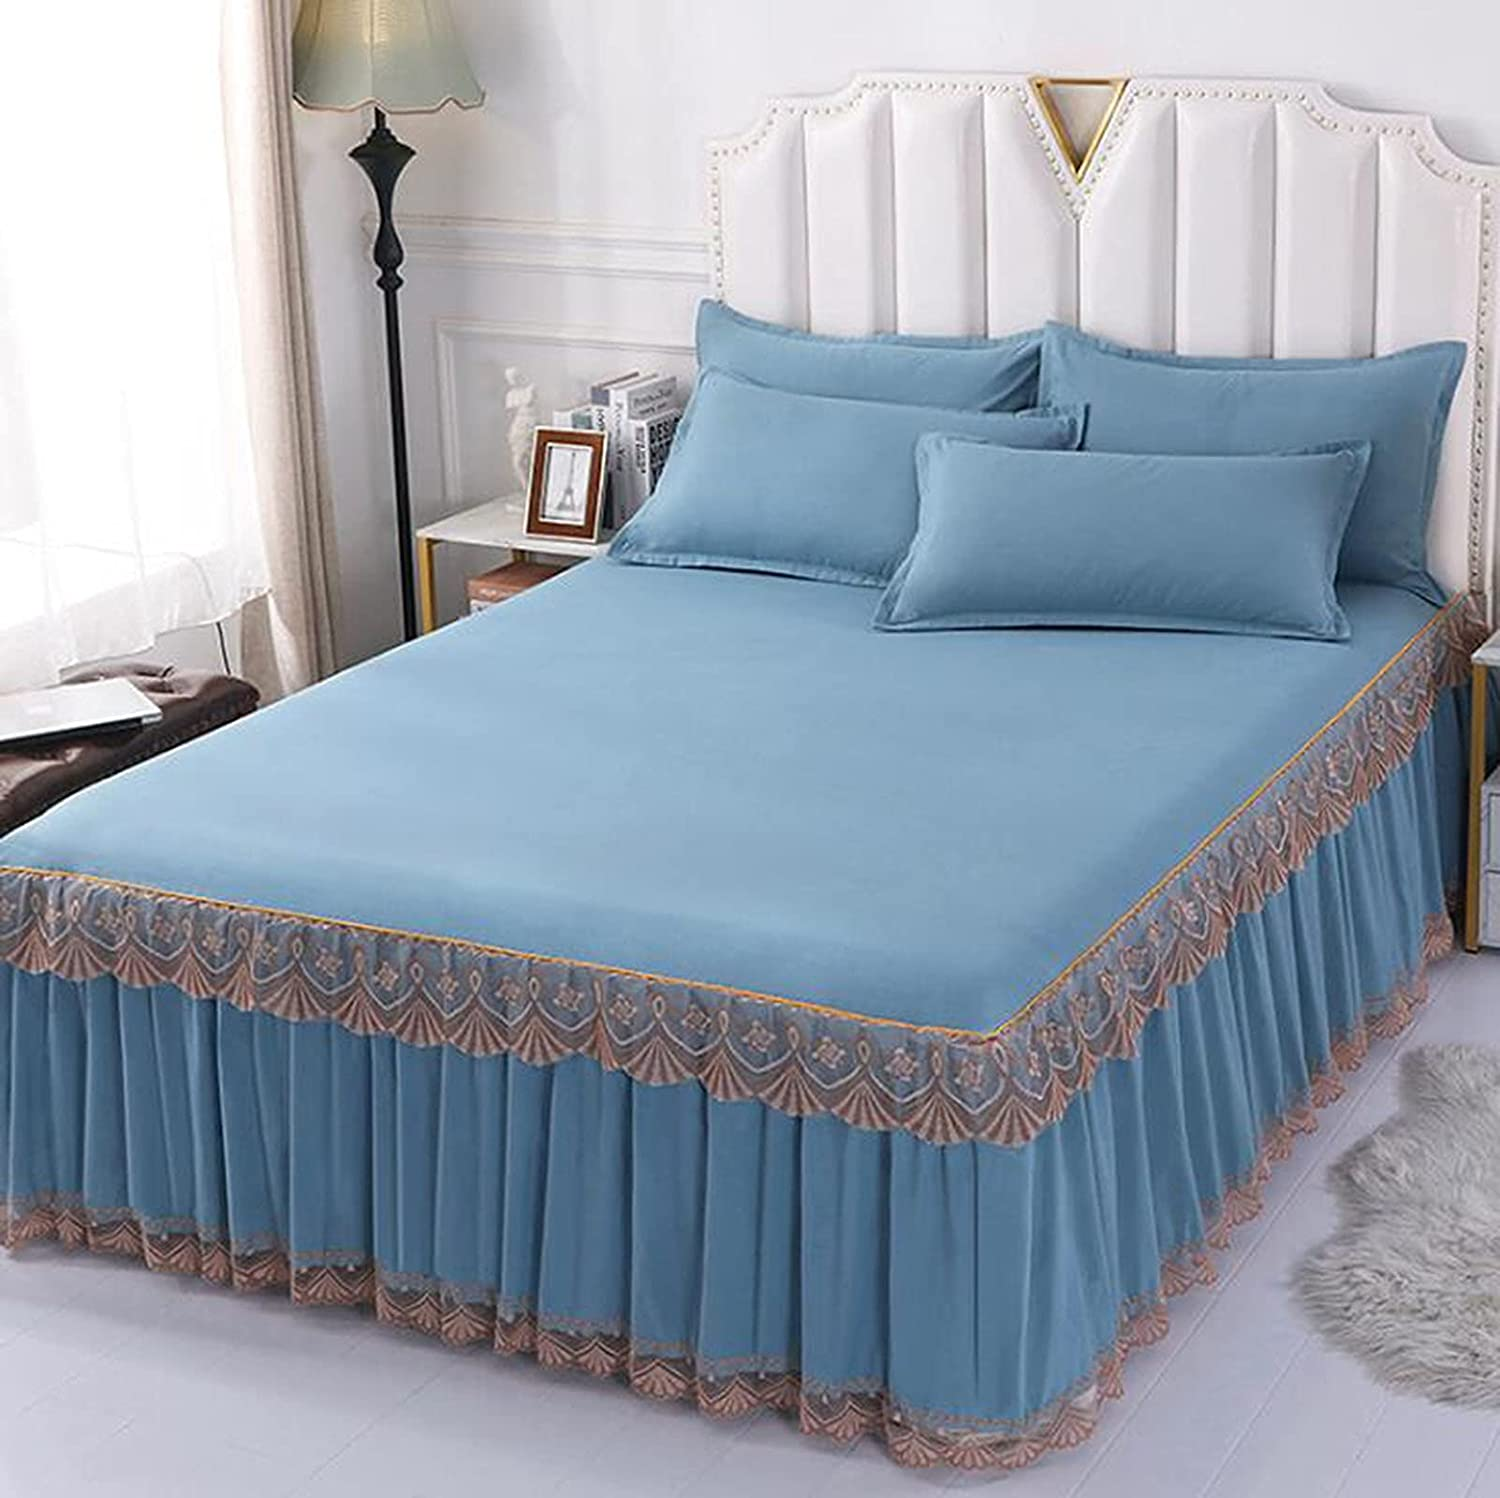 Simmons bedspread skin-friendly Max 57% OFF velvet single Translated lace bed princess